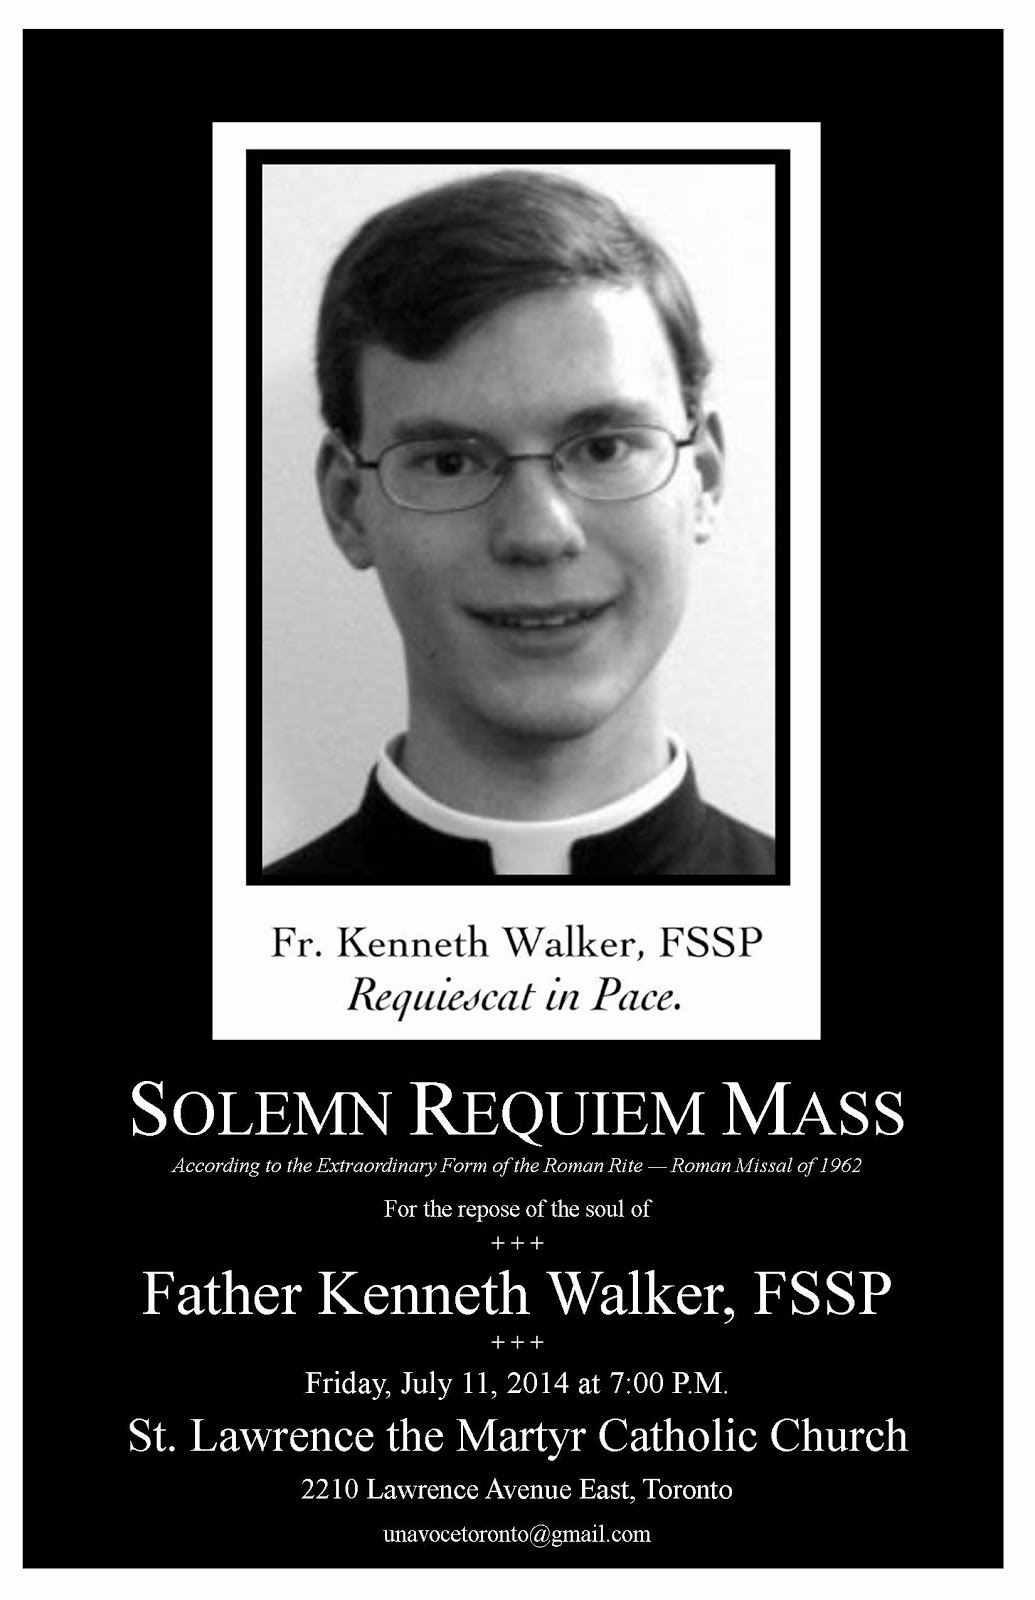 Father Kenneth Walker, FSSP, R.I.P.